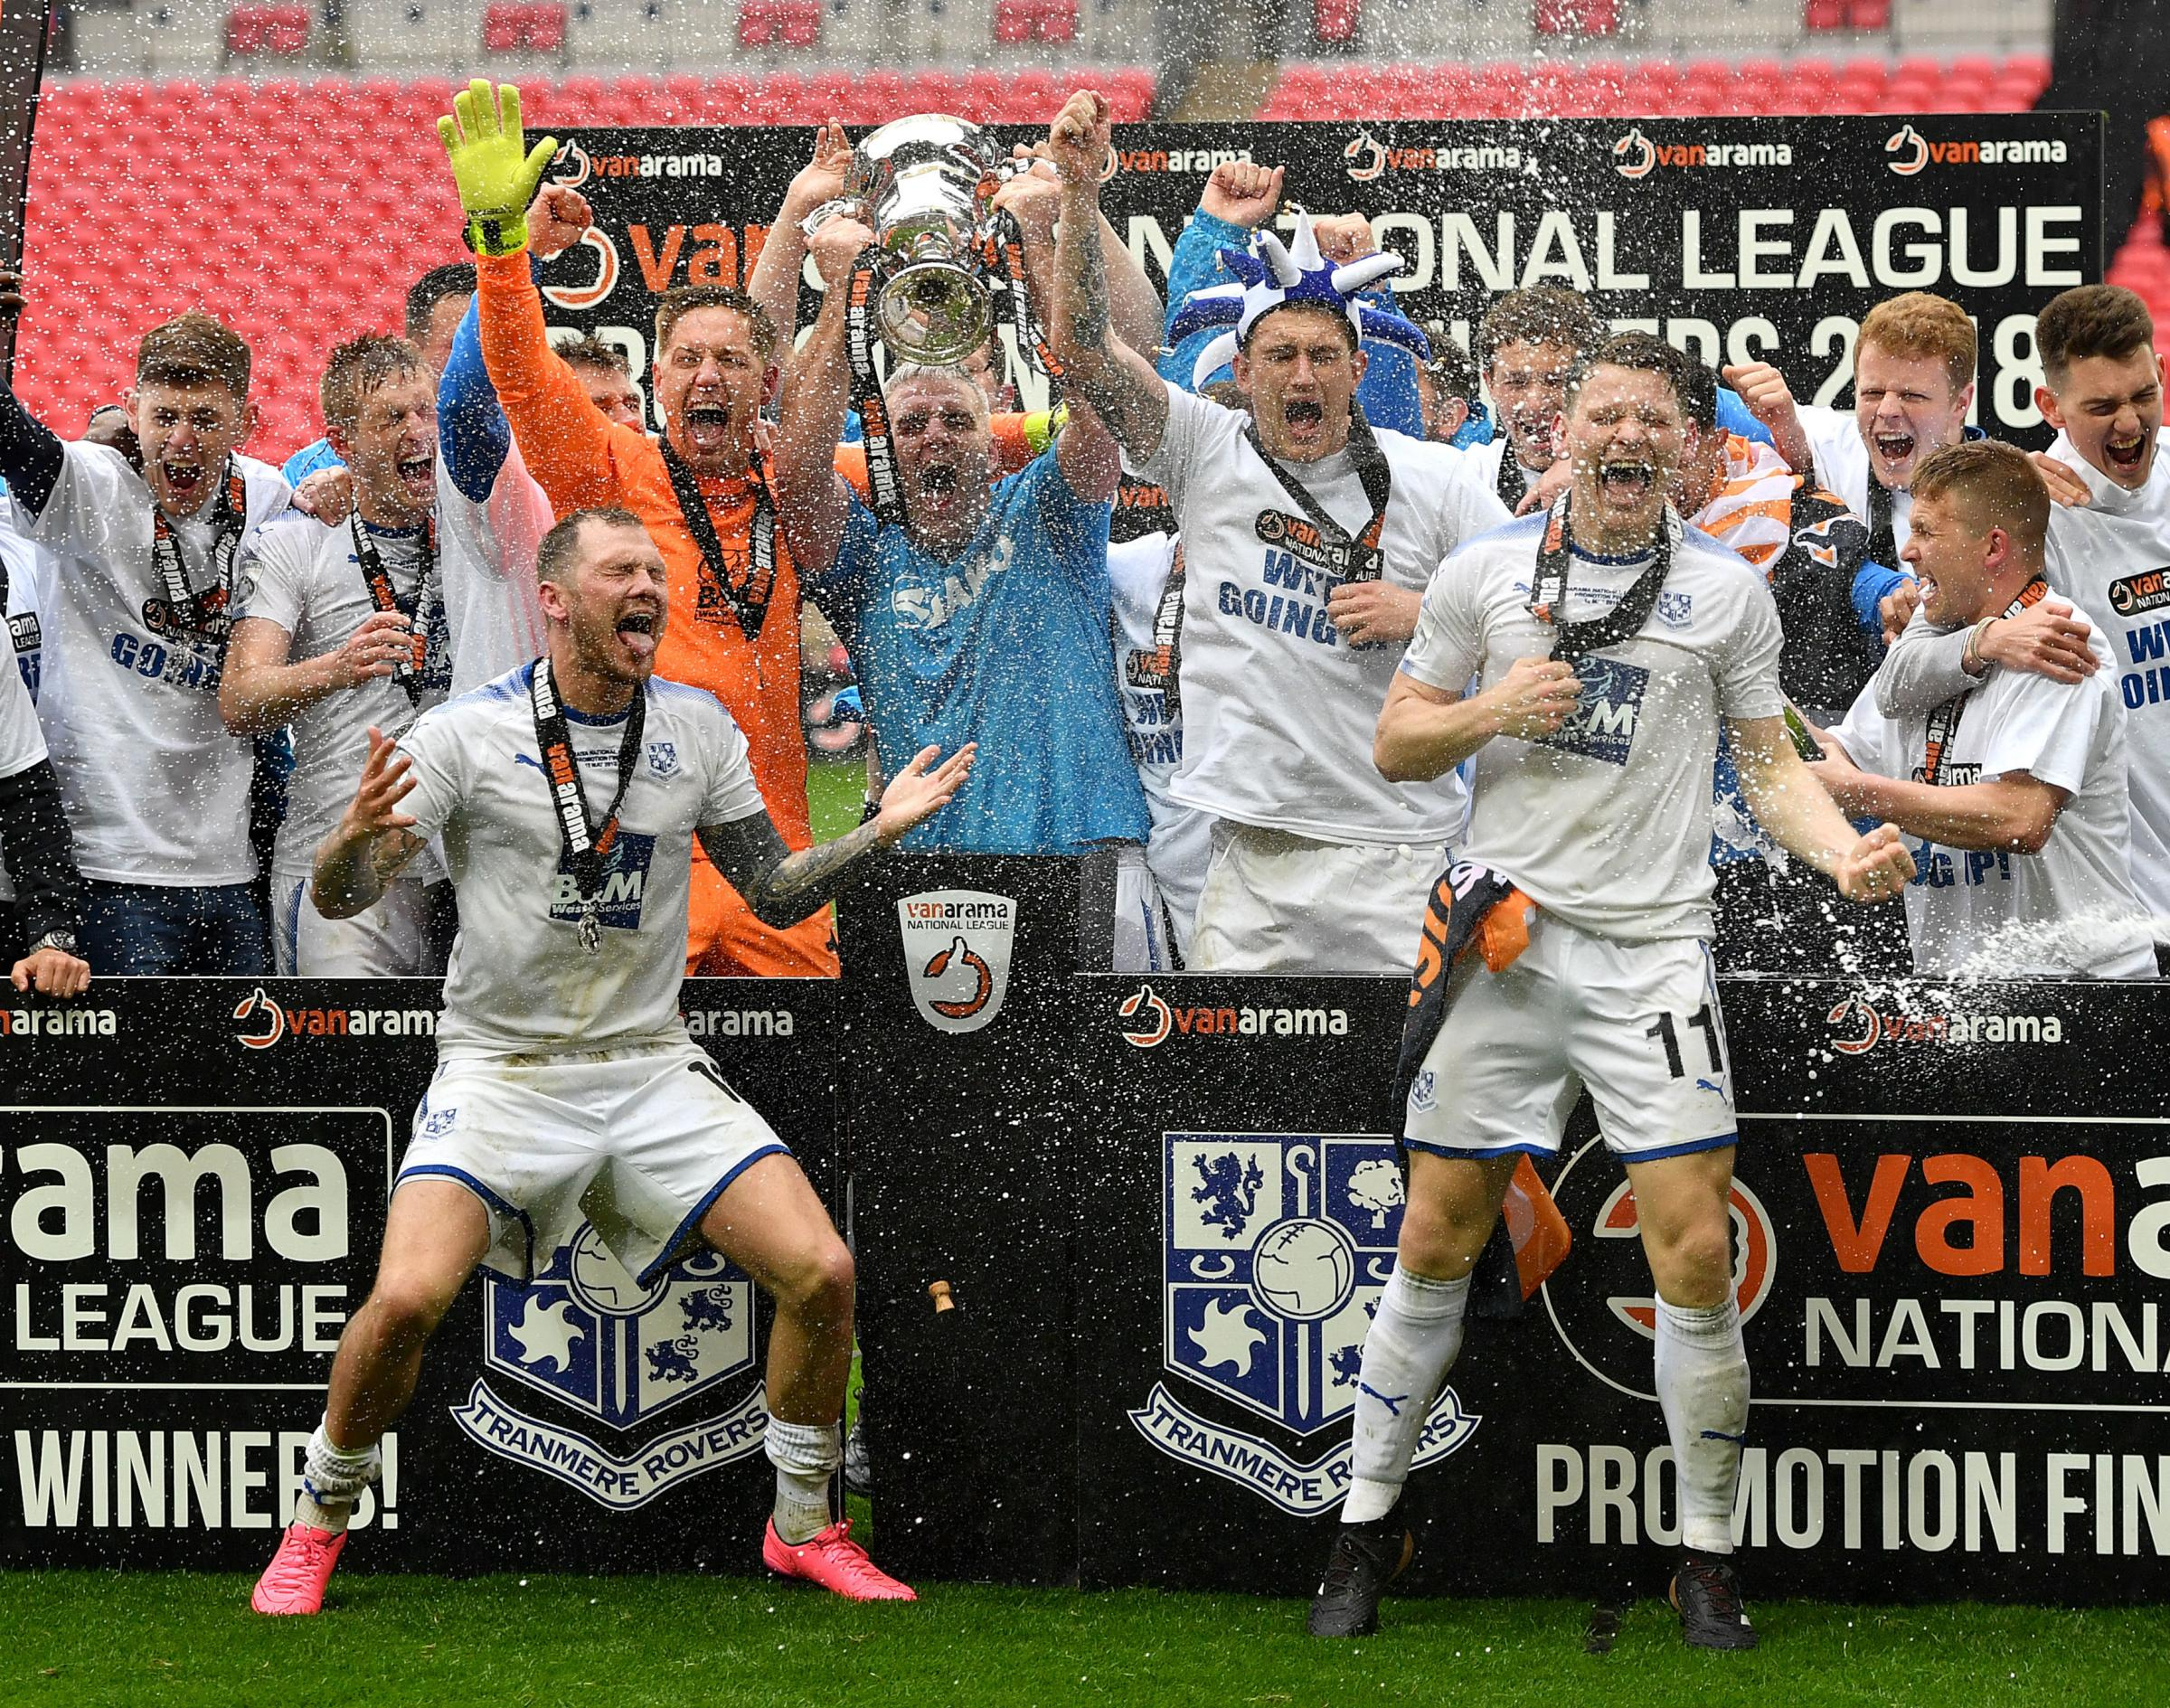 James Norwood, front of picture to the left, enjoys the Wembley celebrations